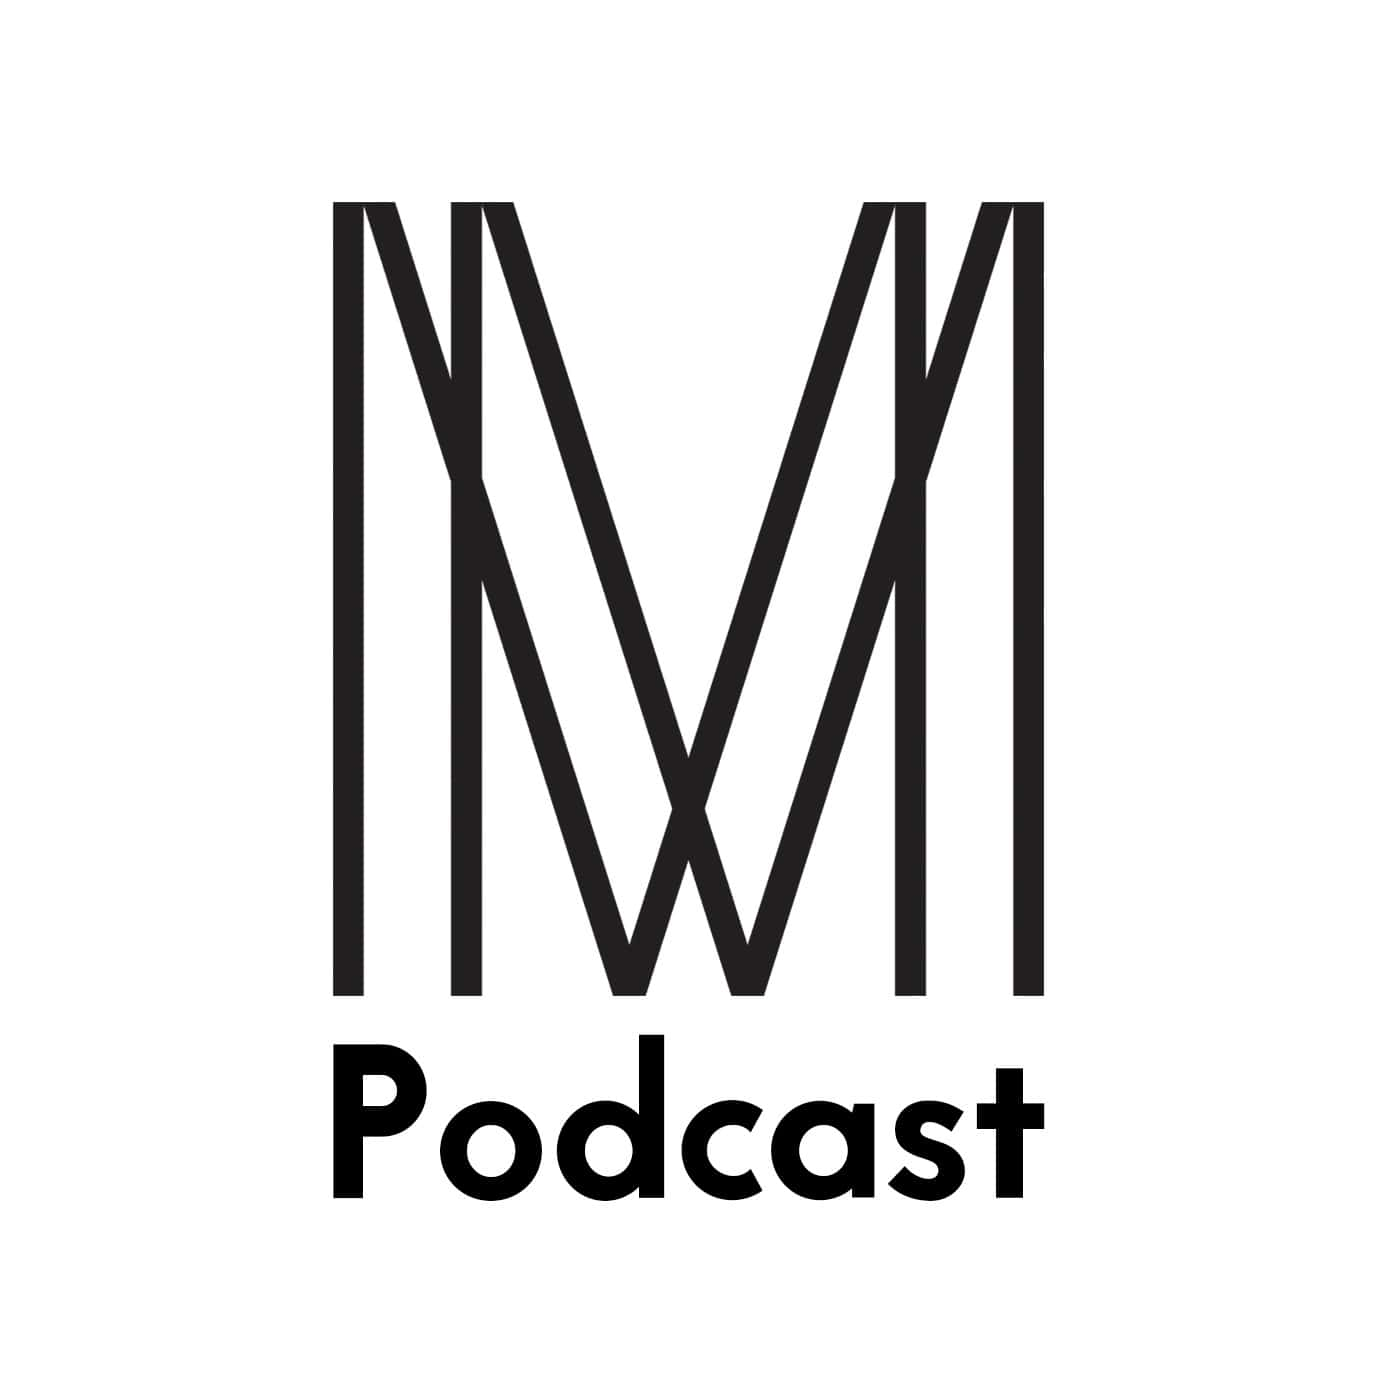 Medium Podcast